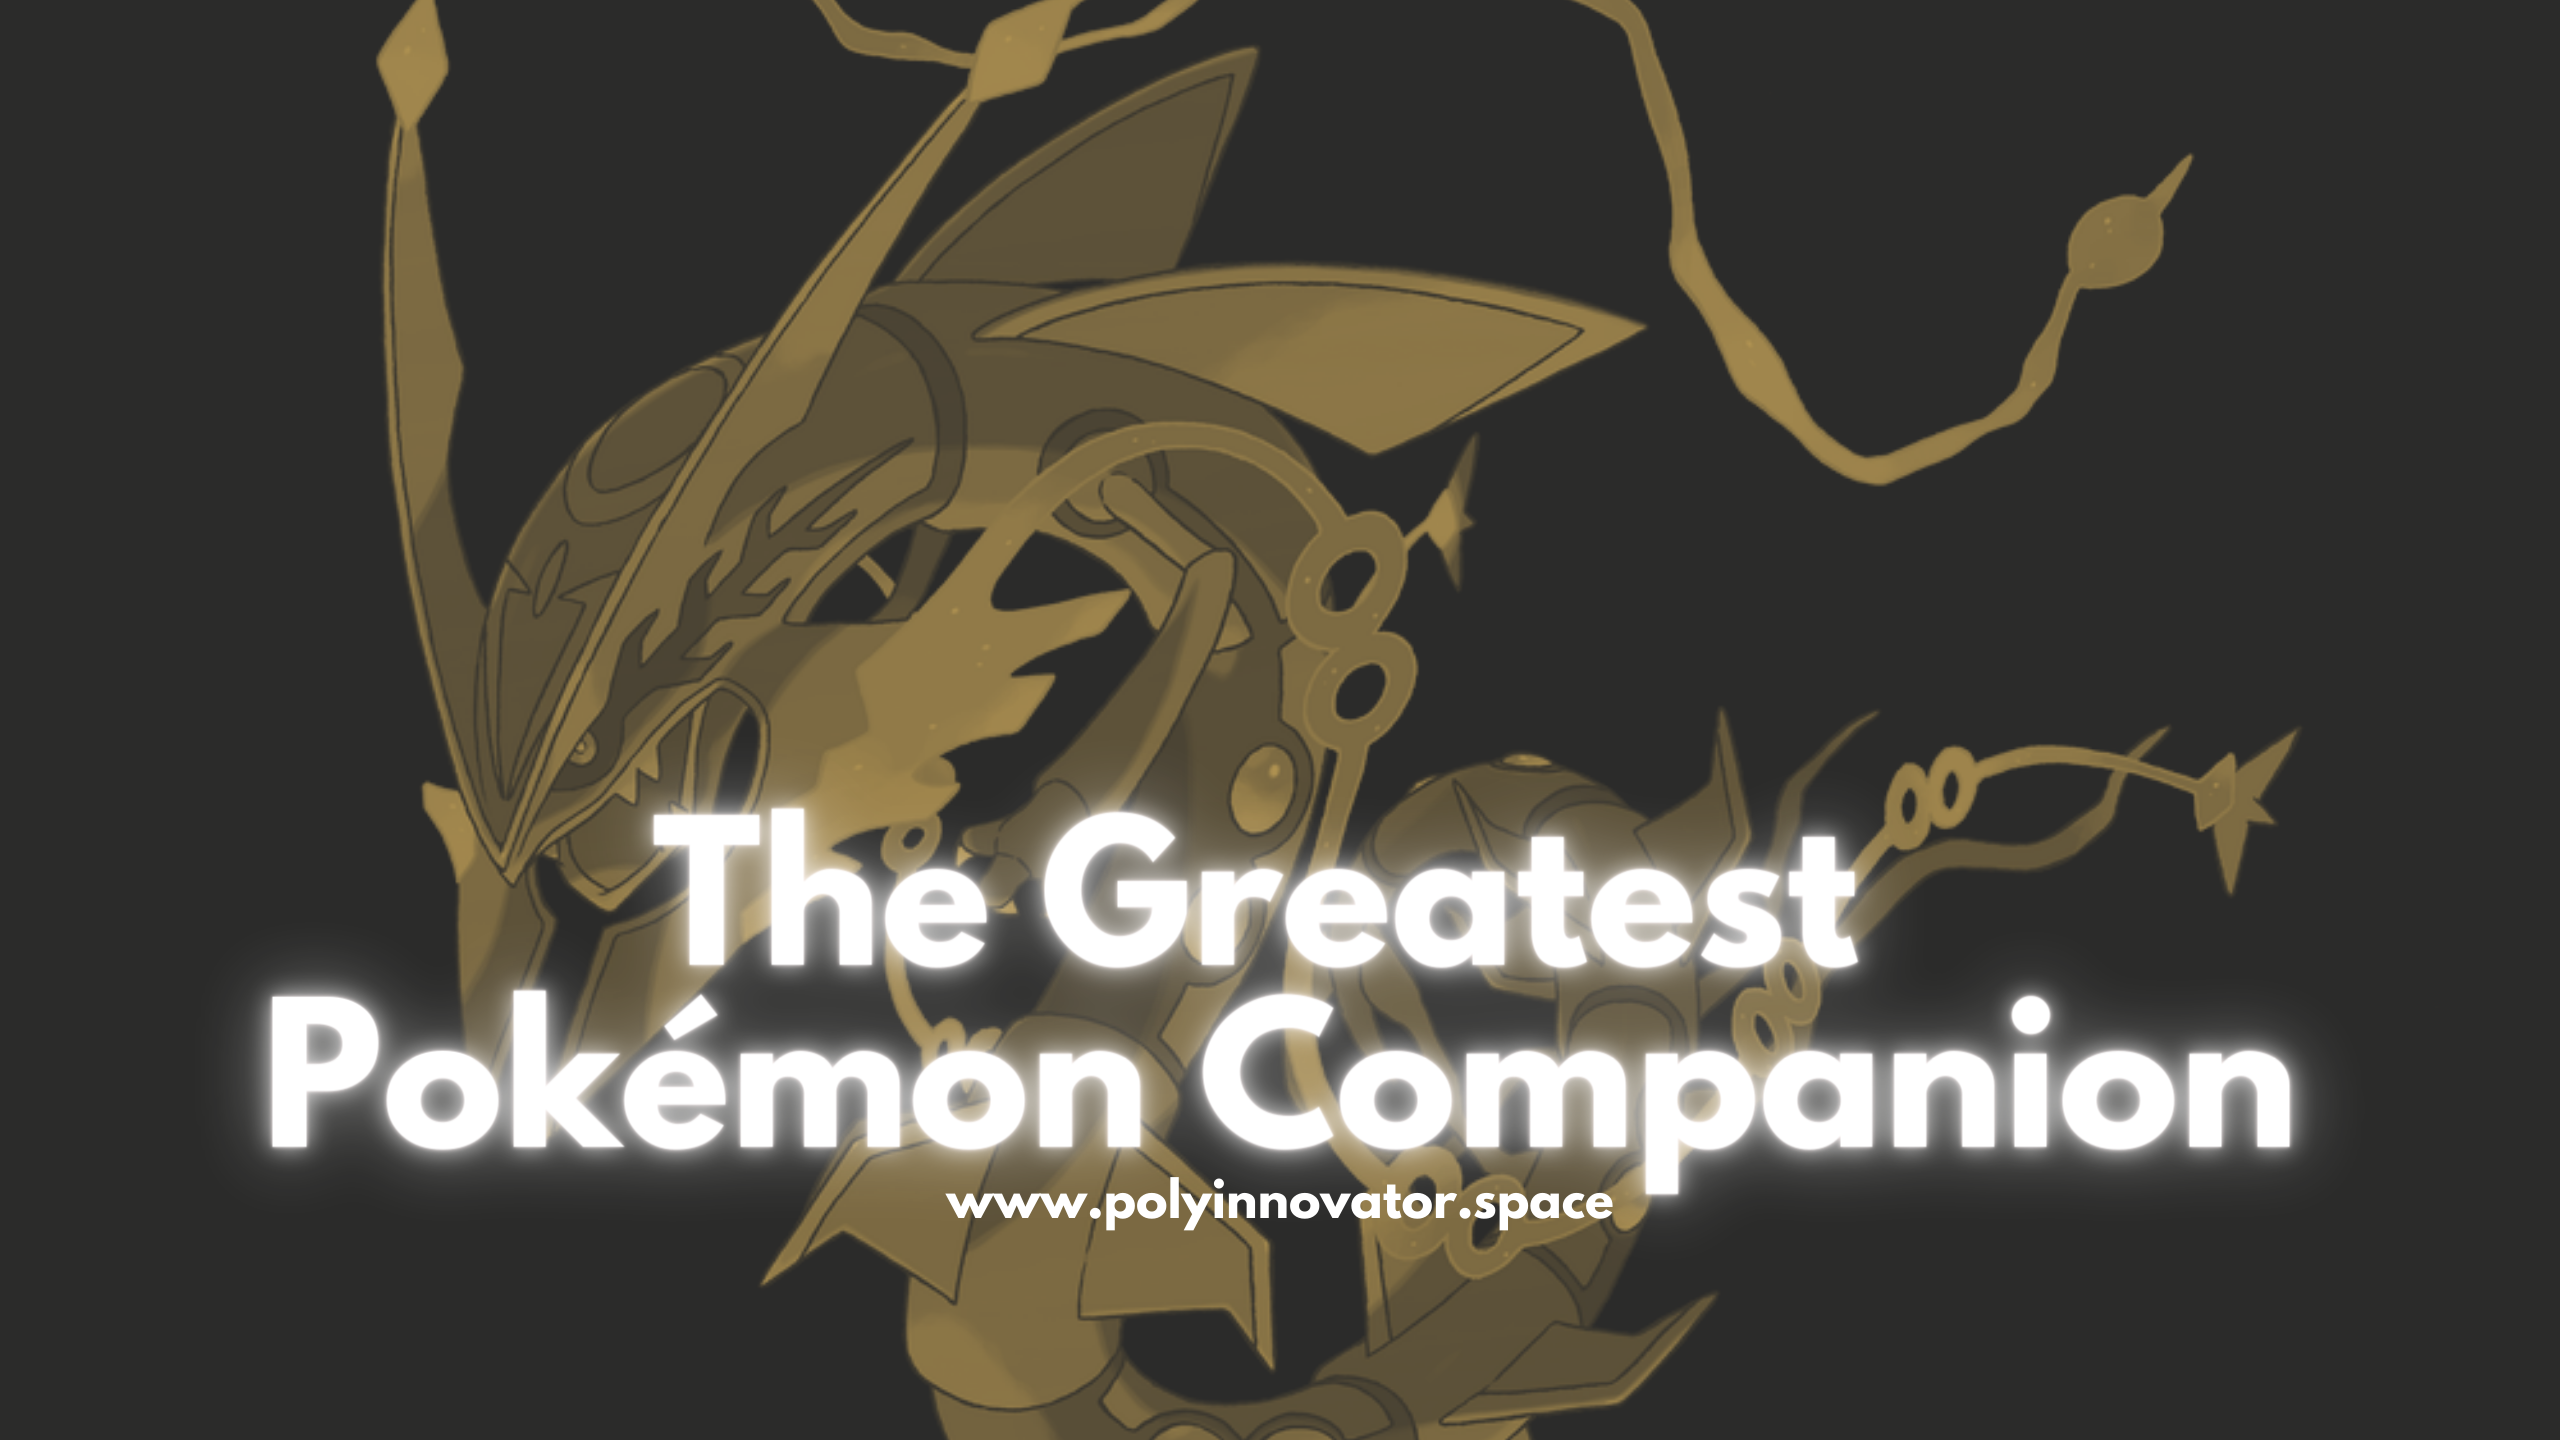 The Greatest Pokémon Companion